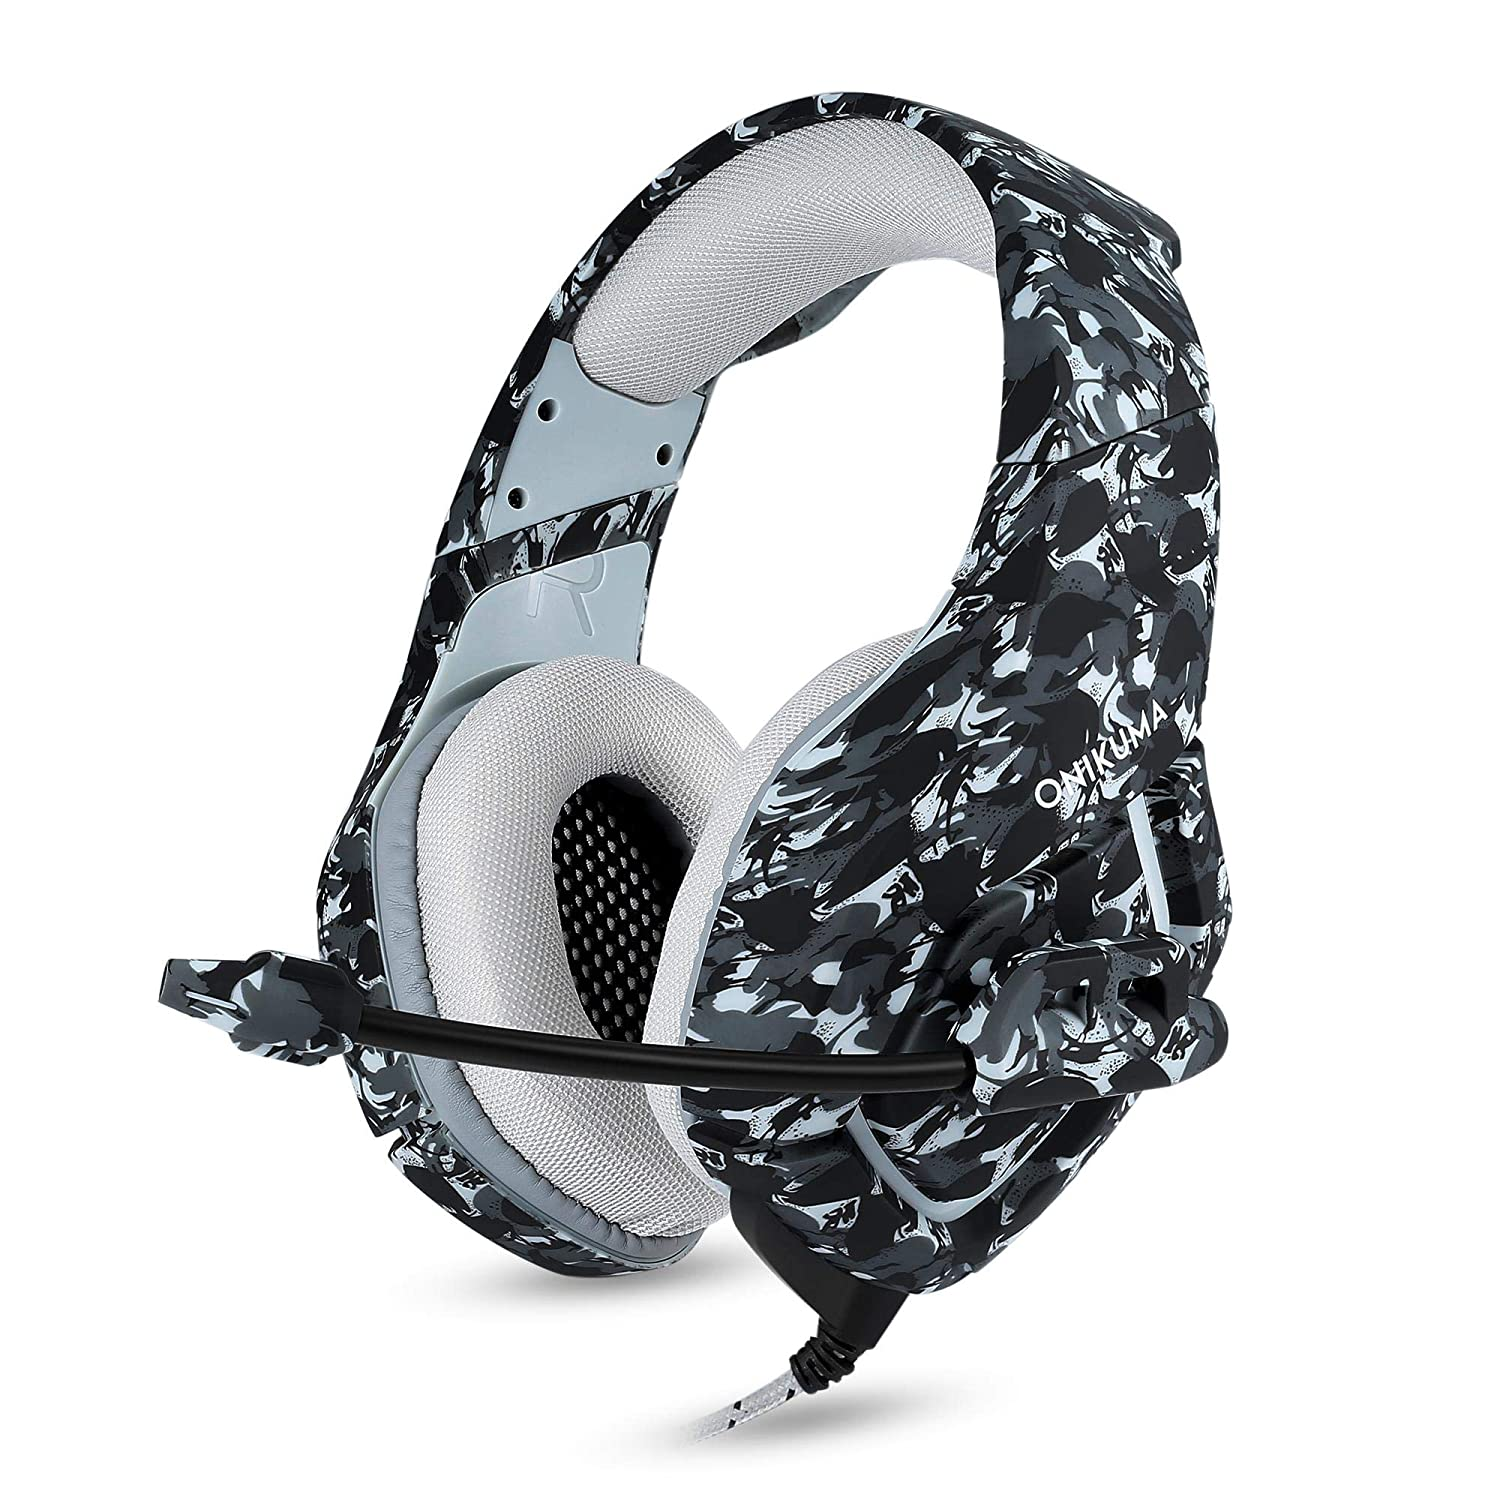 Black Game Headset Camouflage Design